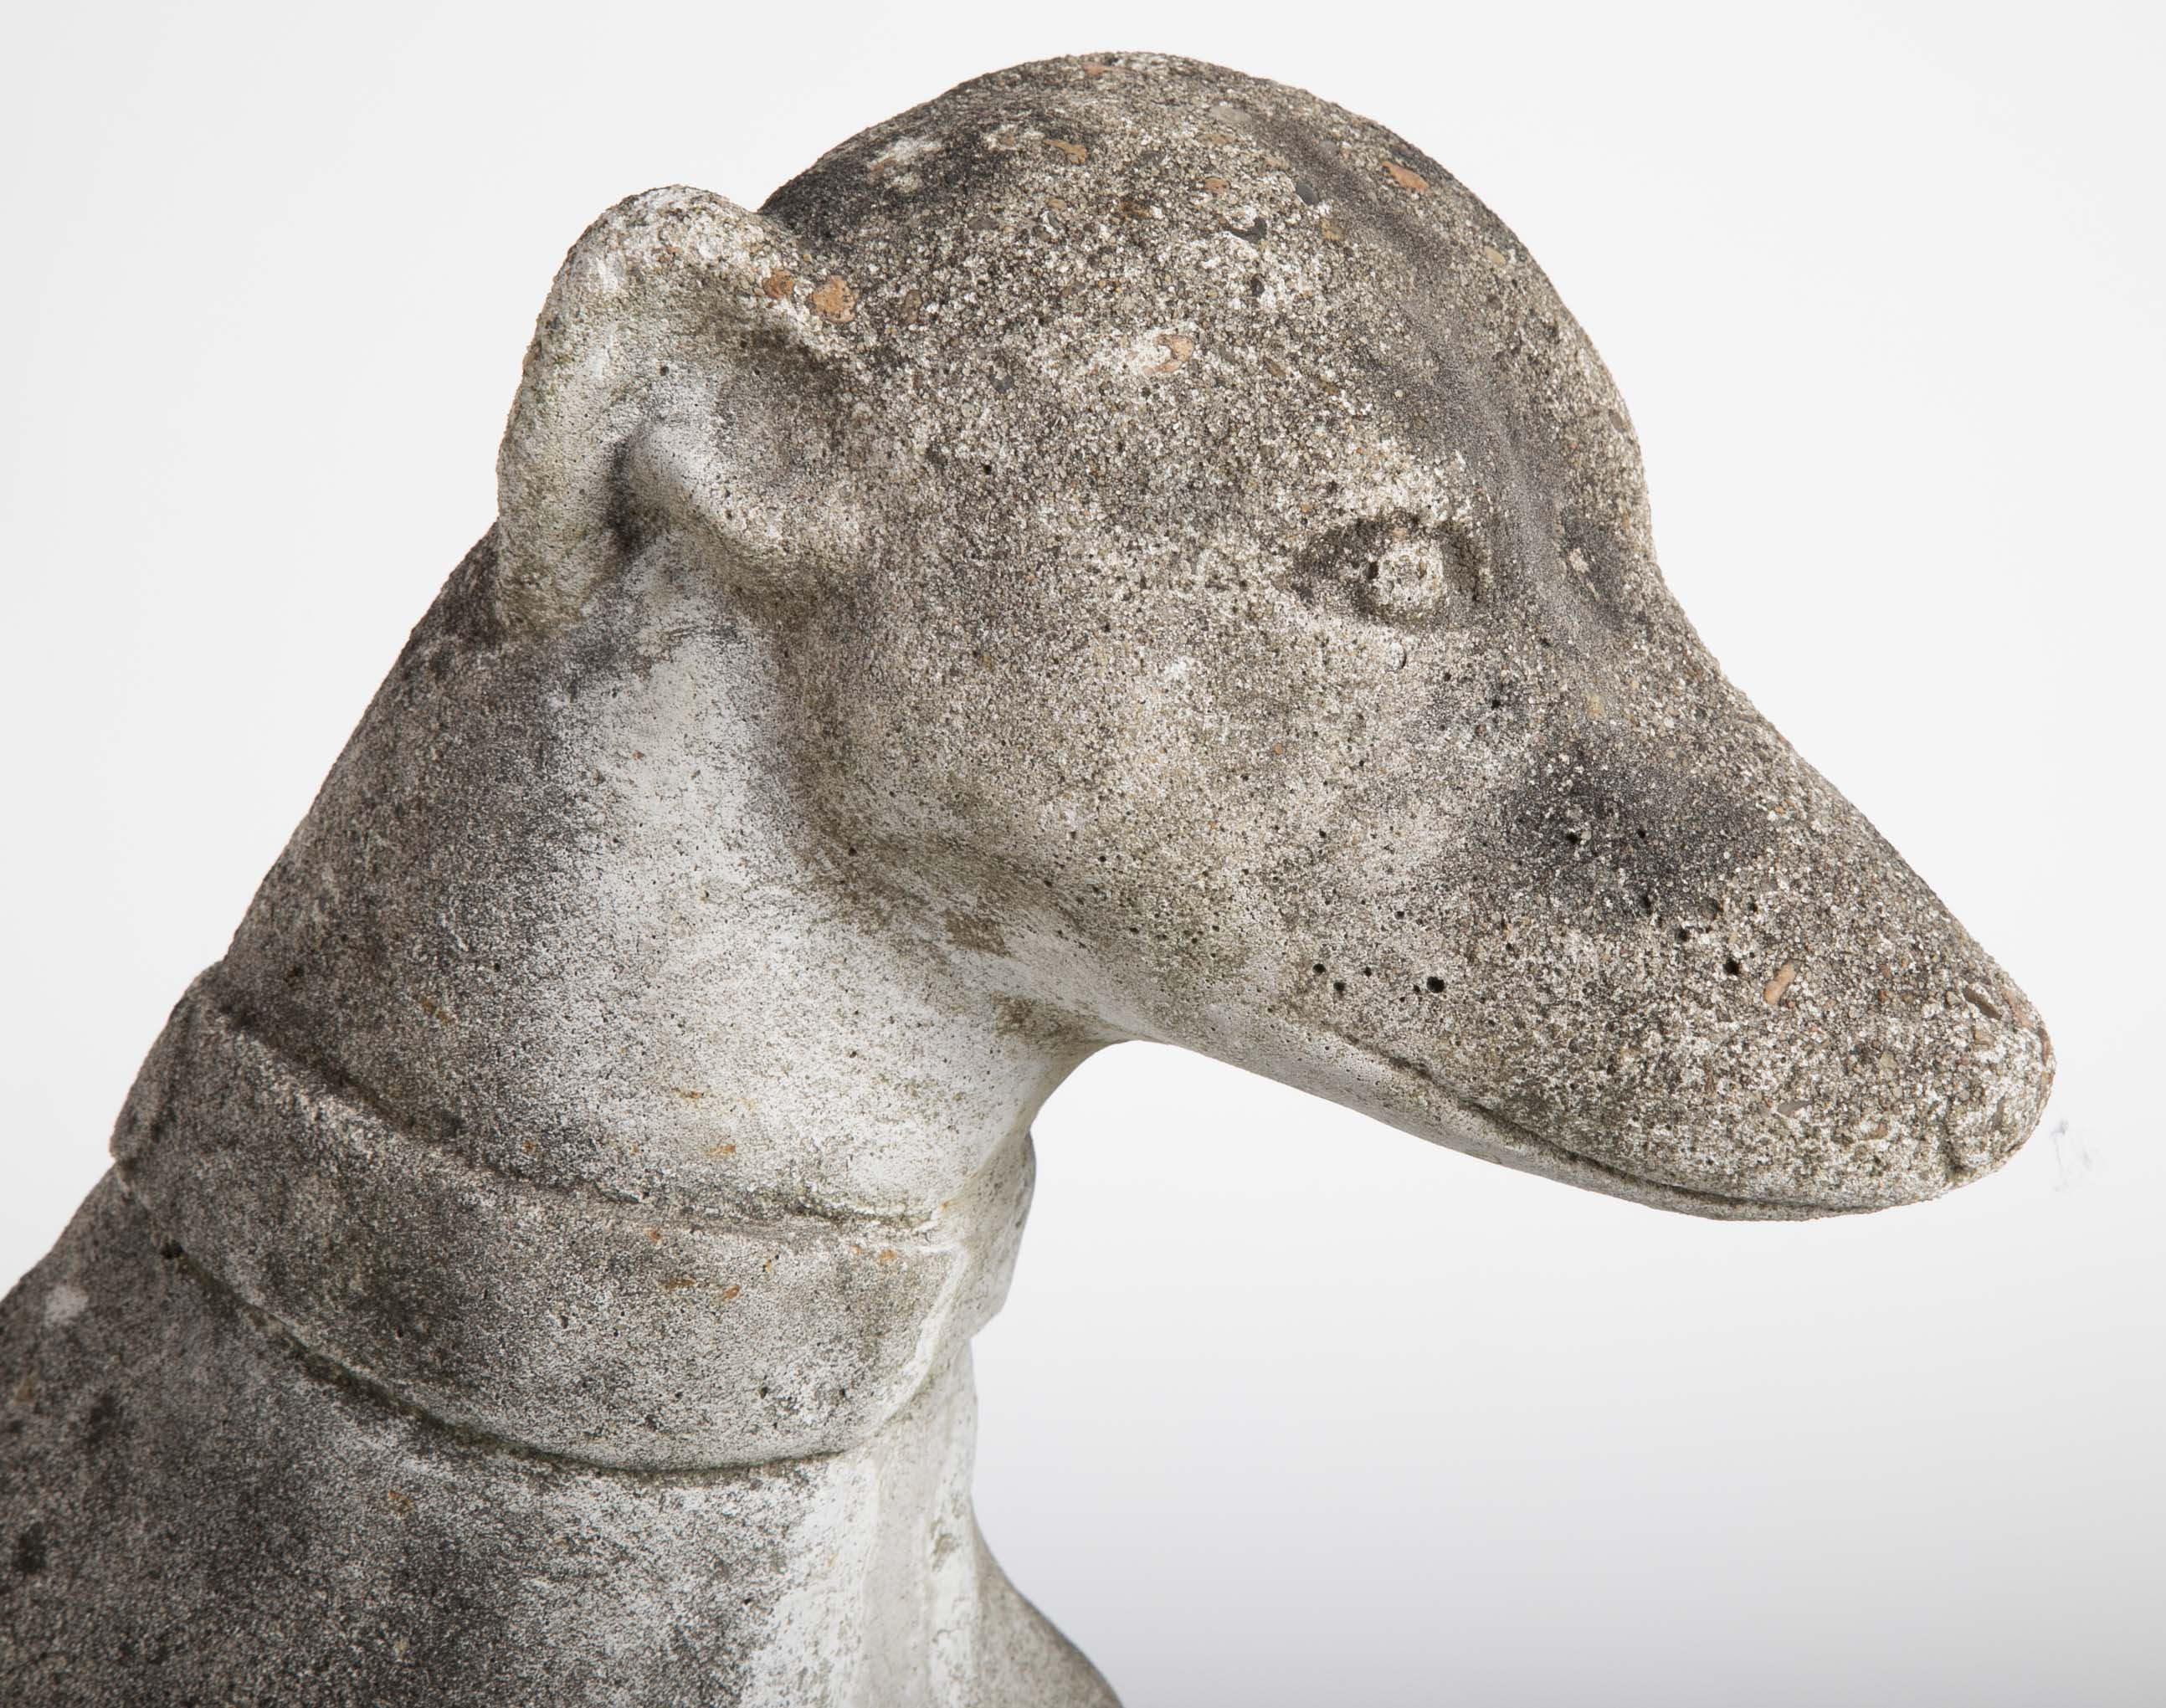 A Cast Stone Figure of a Whippet